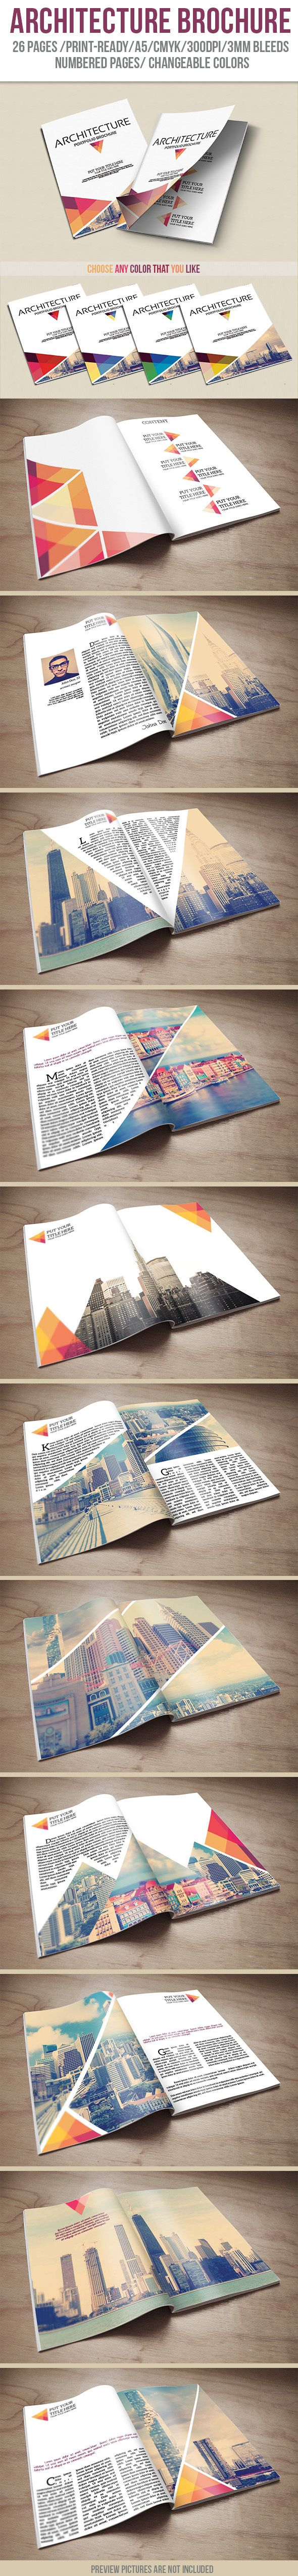 Architecture Portfolio Brochure by crew55design, via Behance #layout #design #graphicdesign